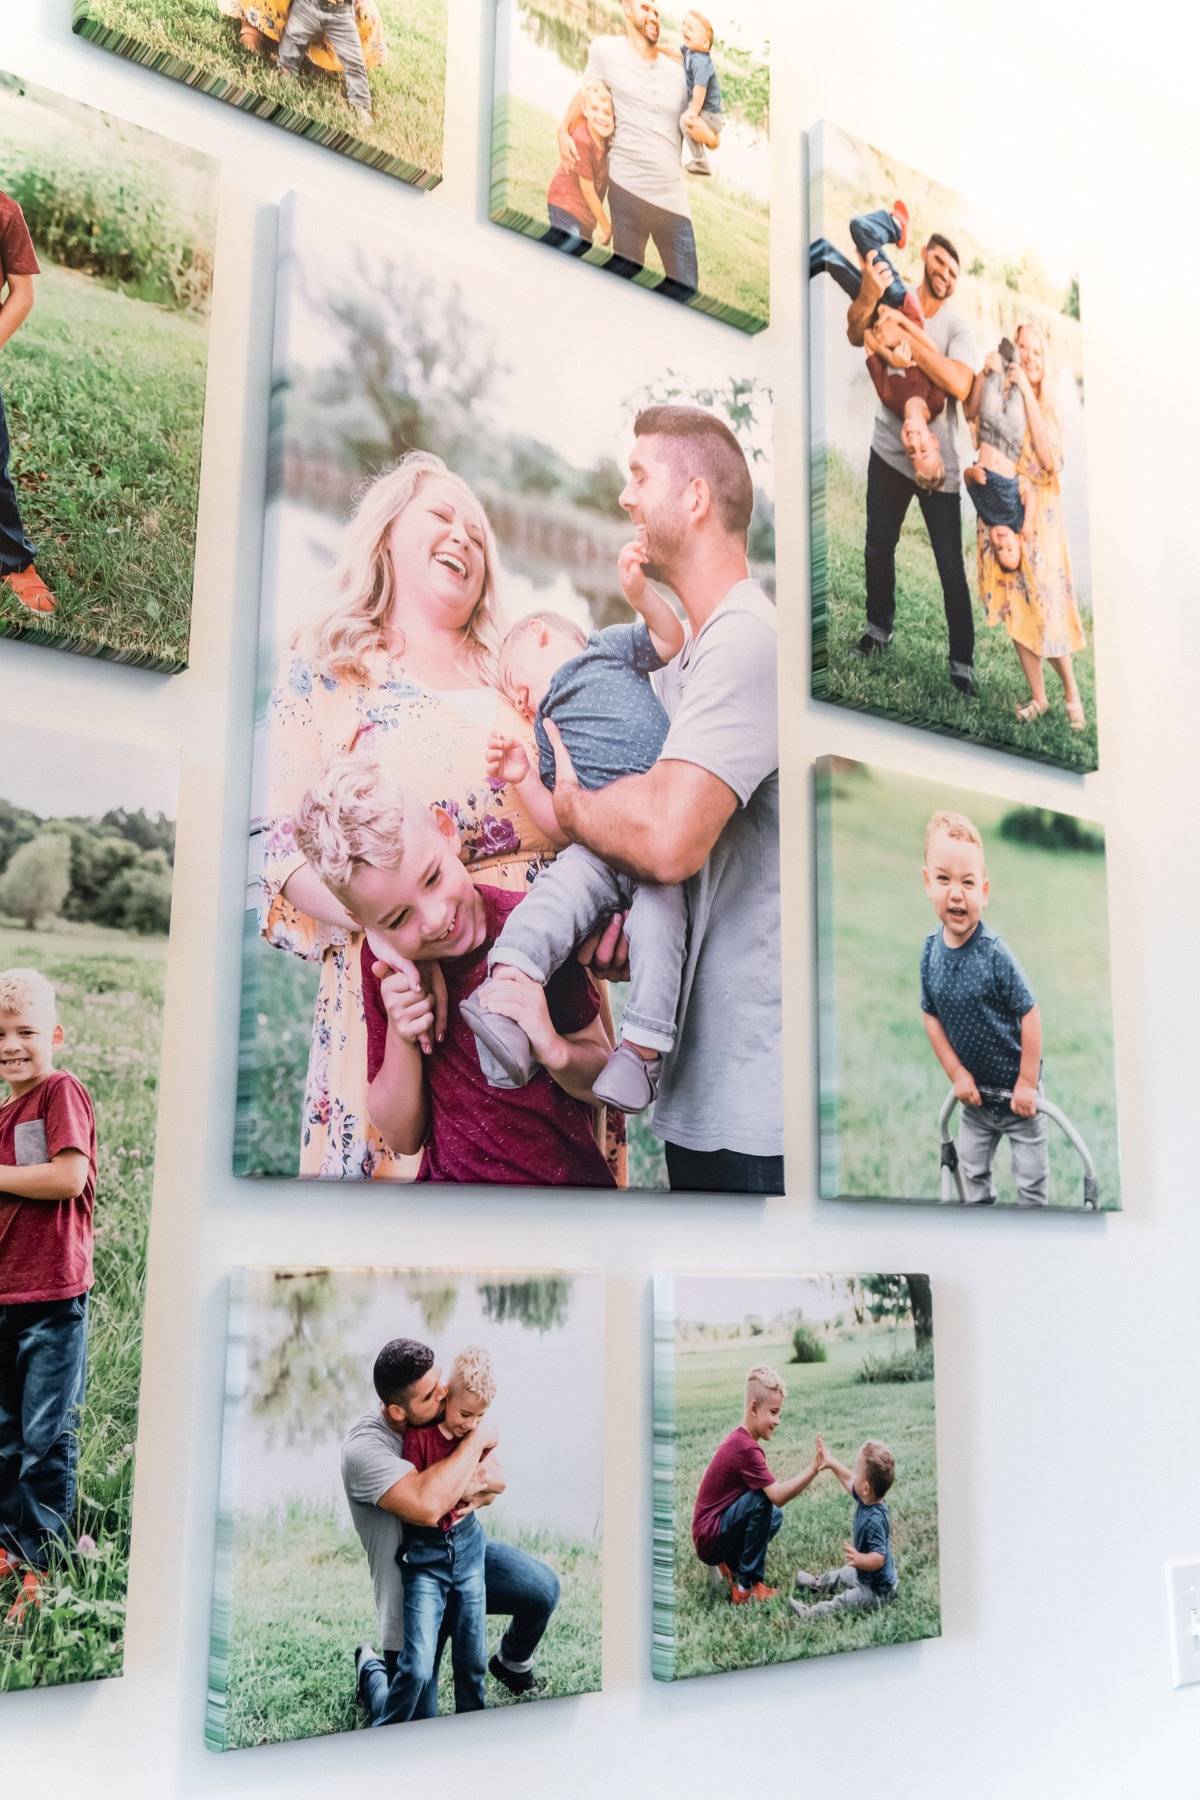 An angle shot of a family photo wall